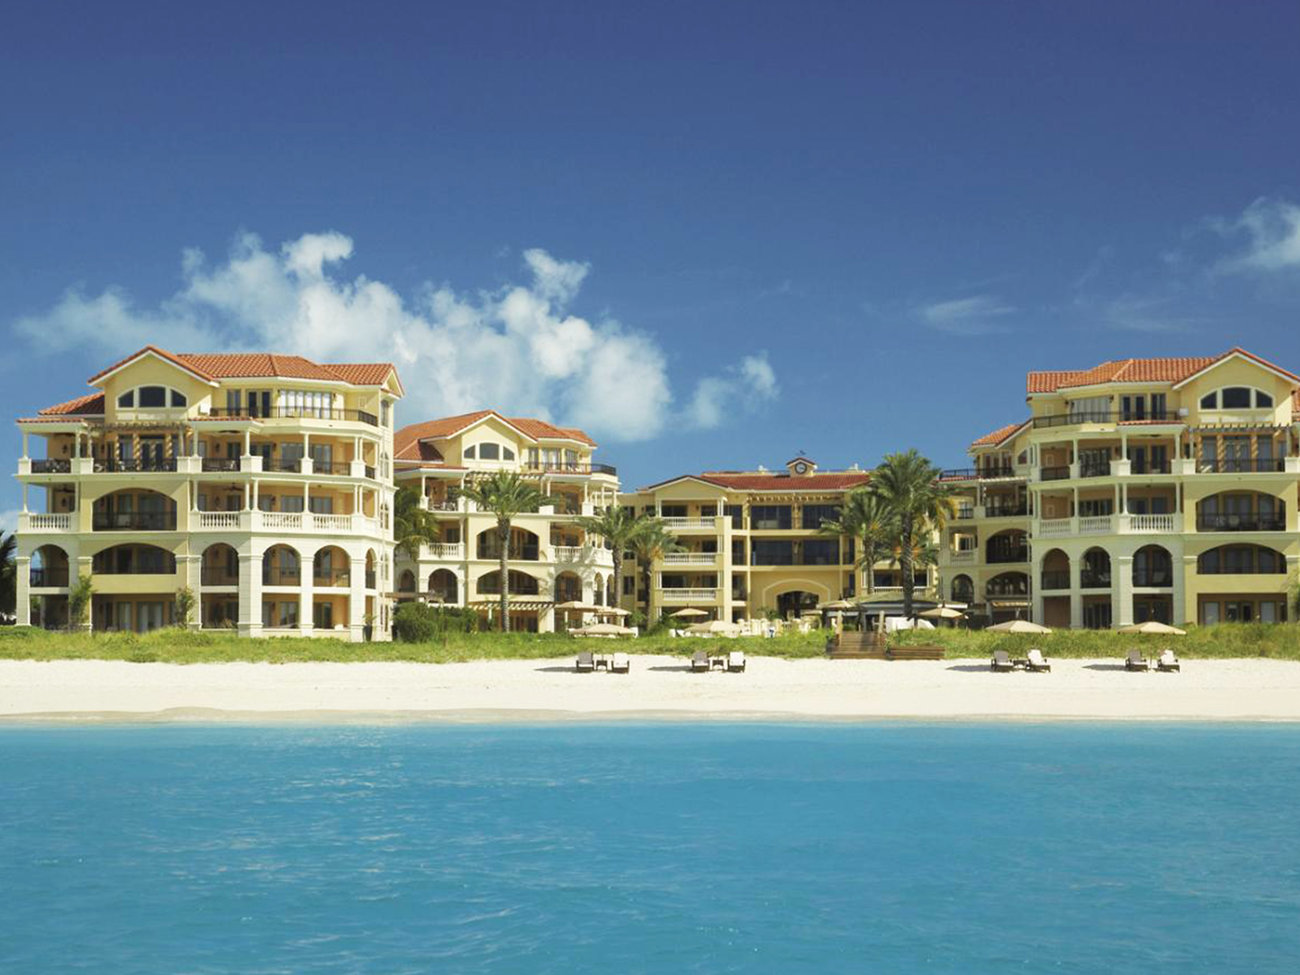 Somerset on Grace Bay Hotel in Turks and Caicos